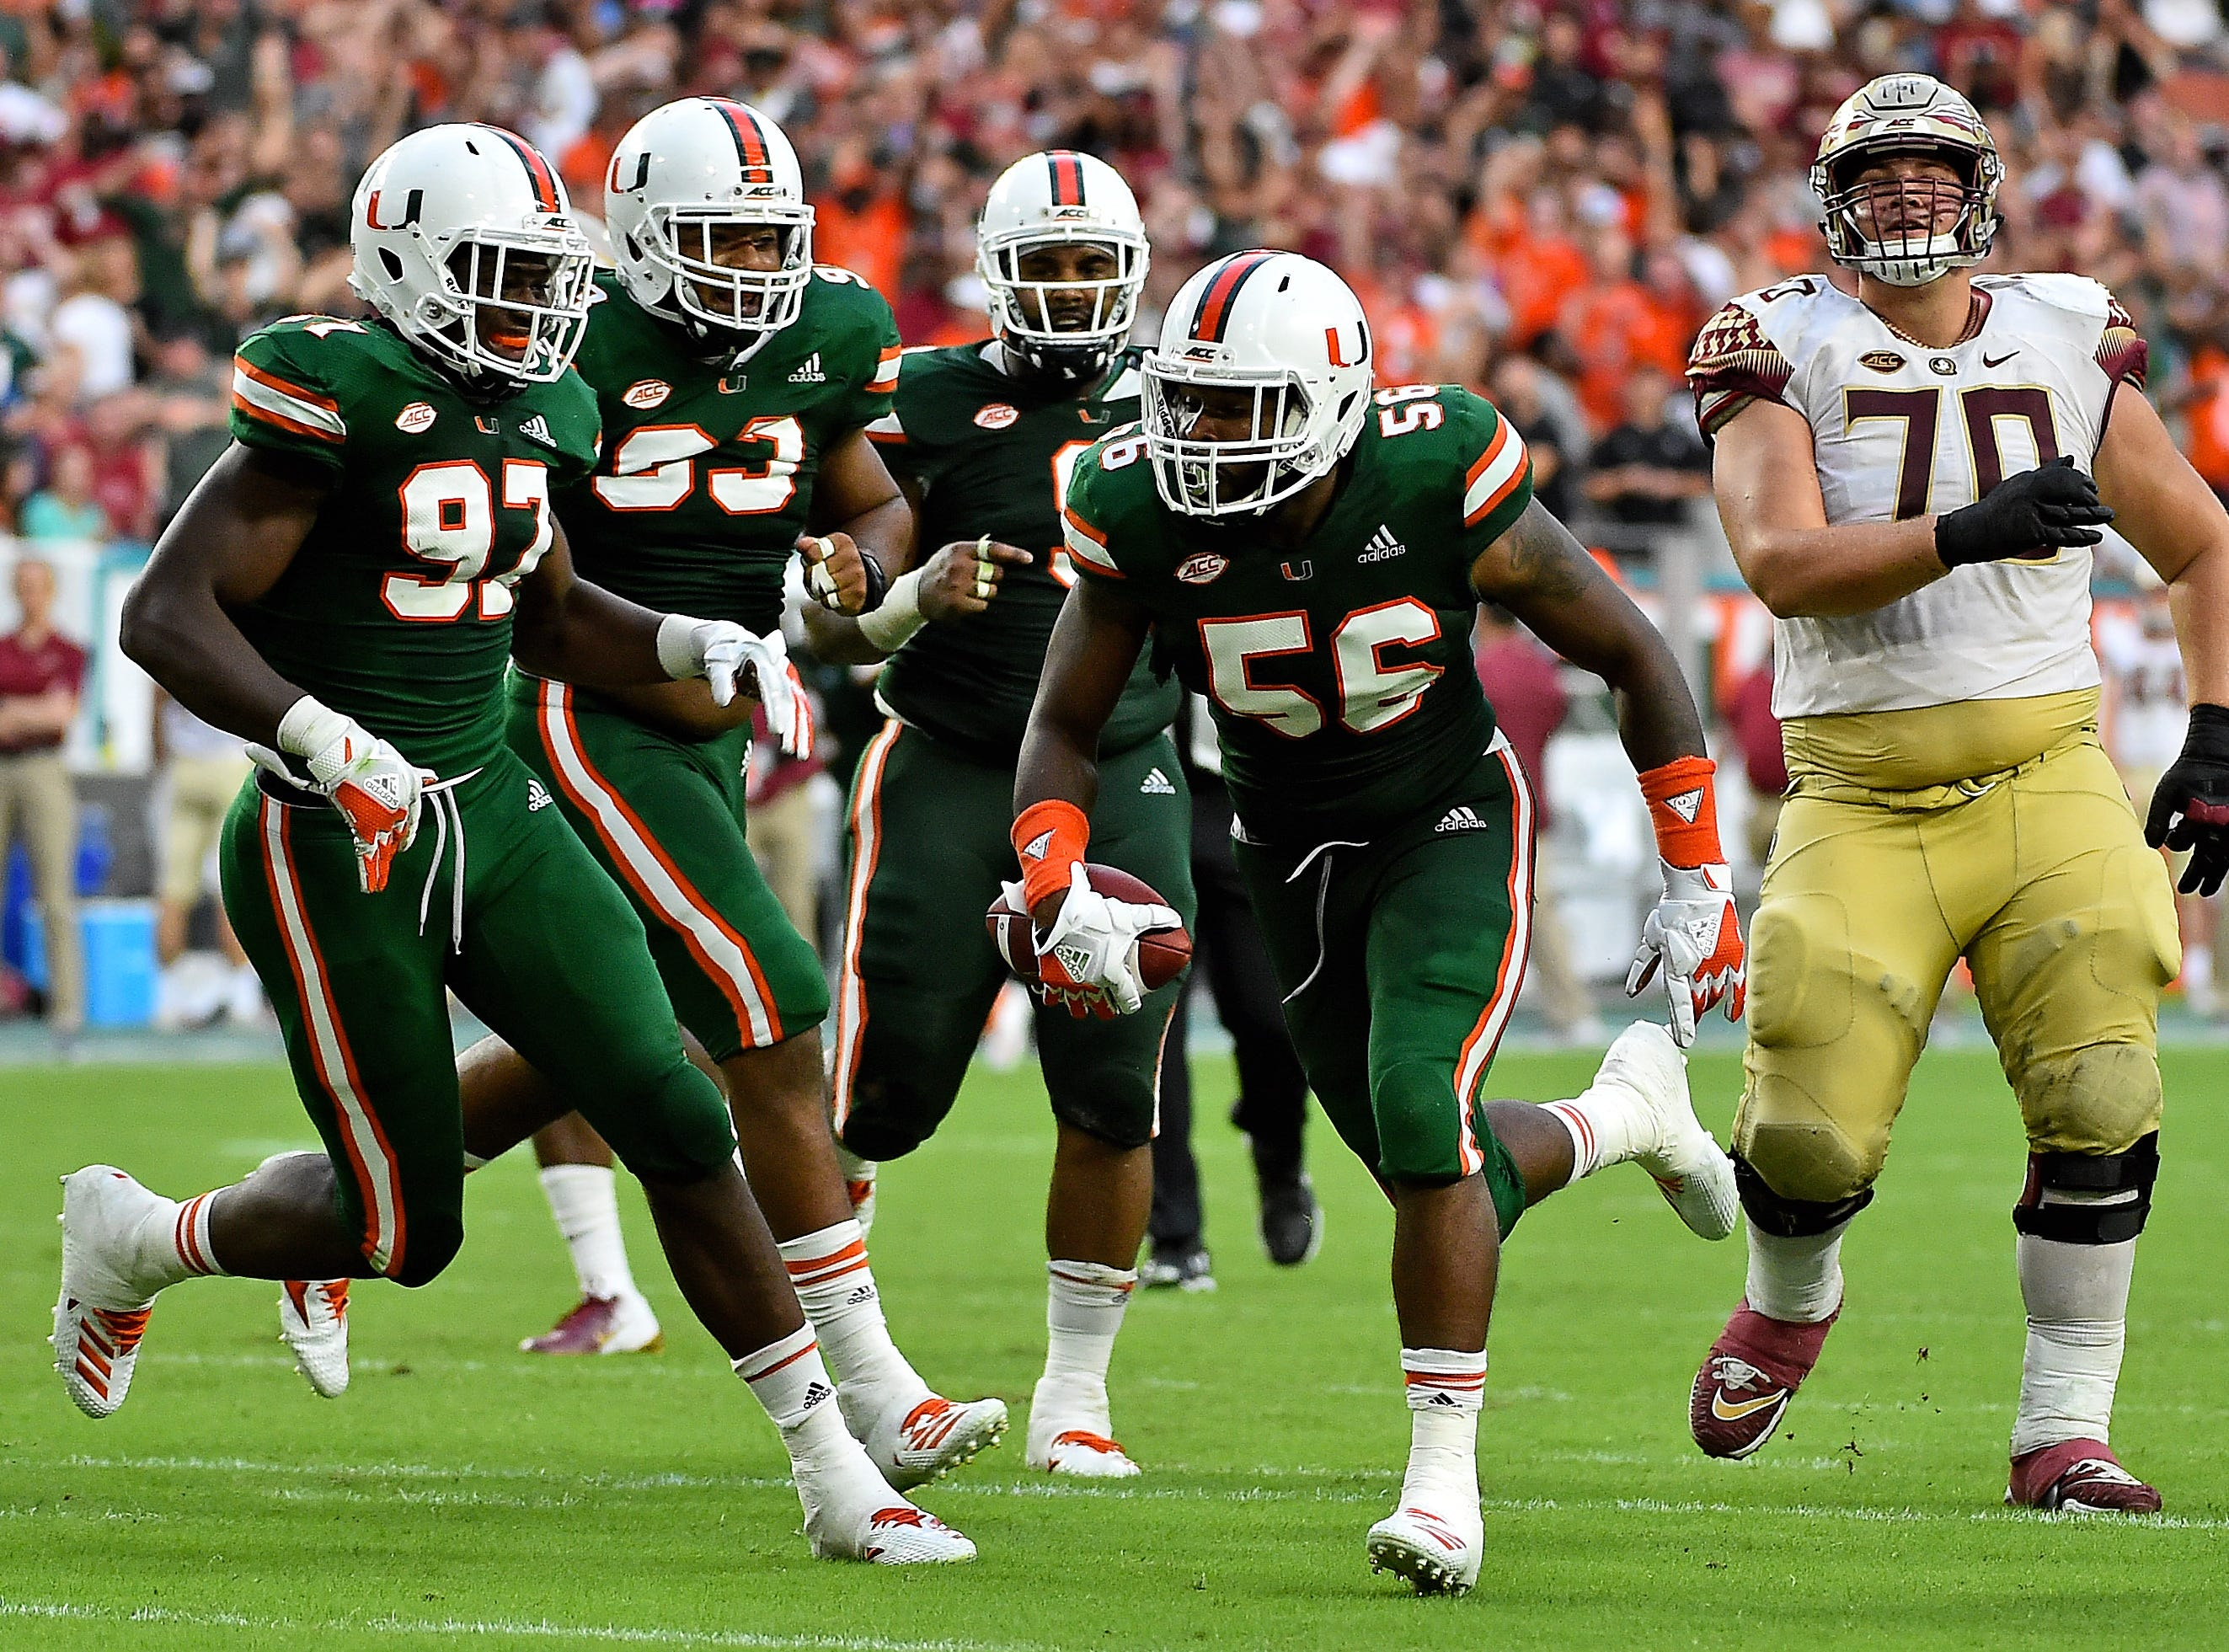 Oct 6, 2018; Miami Gardens, FL, USA; Miami Hurricanes linebacker Michael Pinckney (56) celebrates after intercepting a pass during the second half against the Florida State Seminoles at Hard Rock Stadium. Mandatory Credit: Jasen Vinlove-USA TODAY Sports